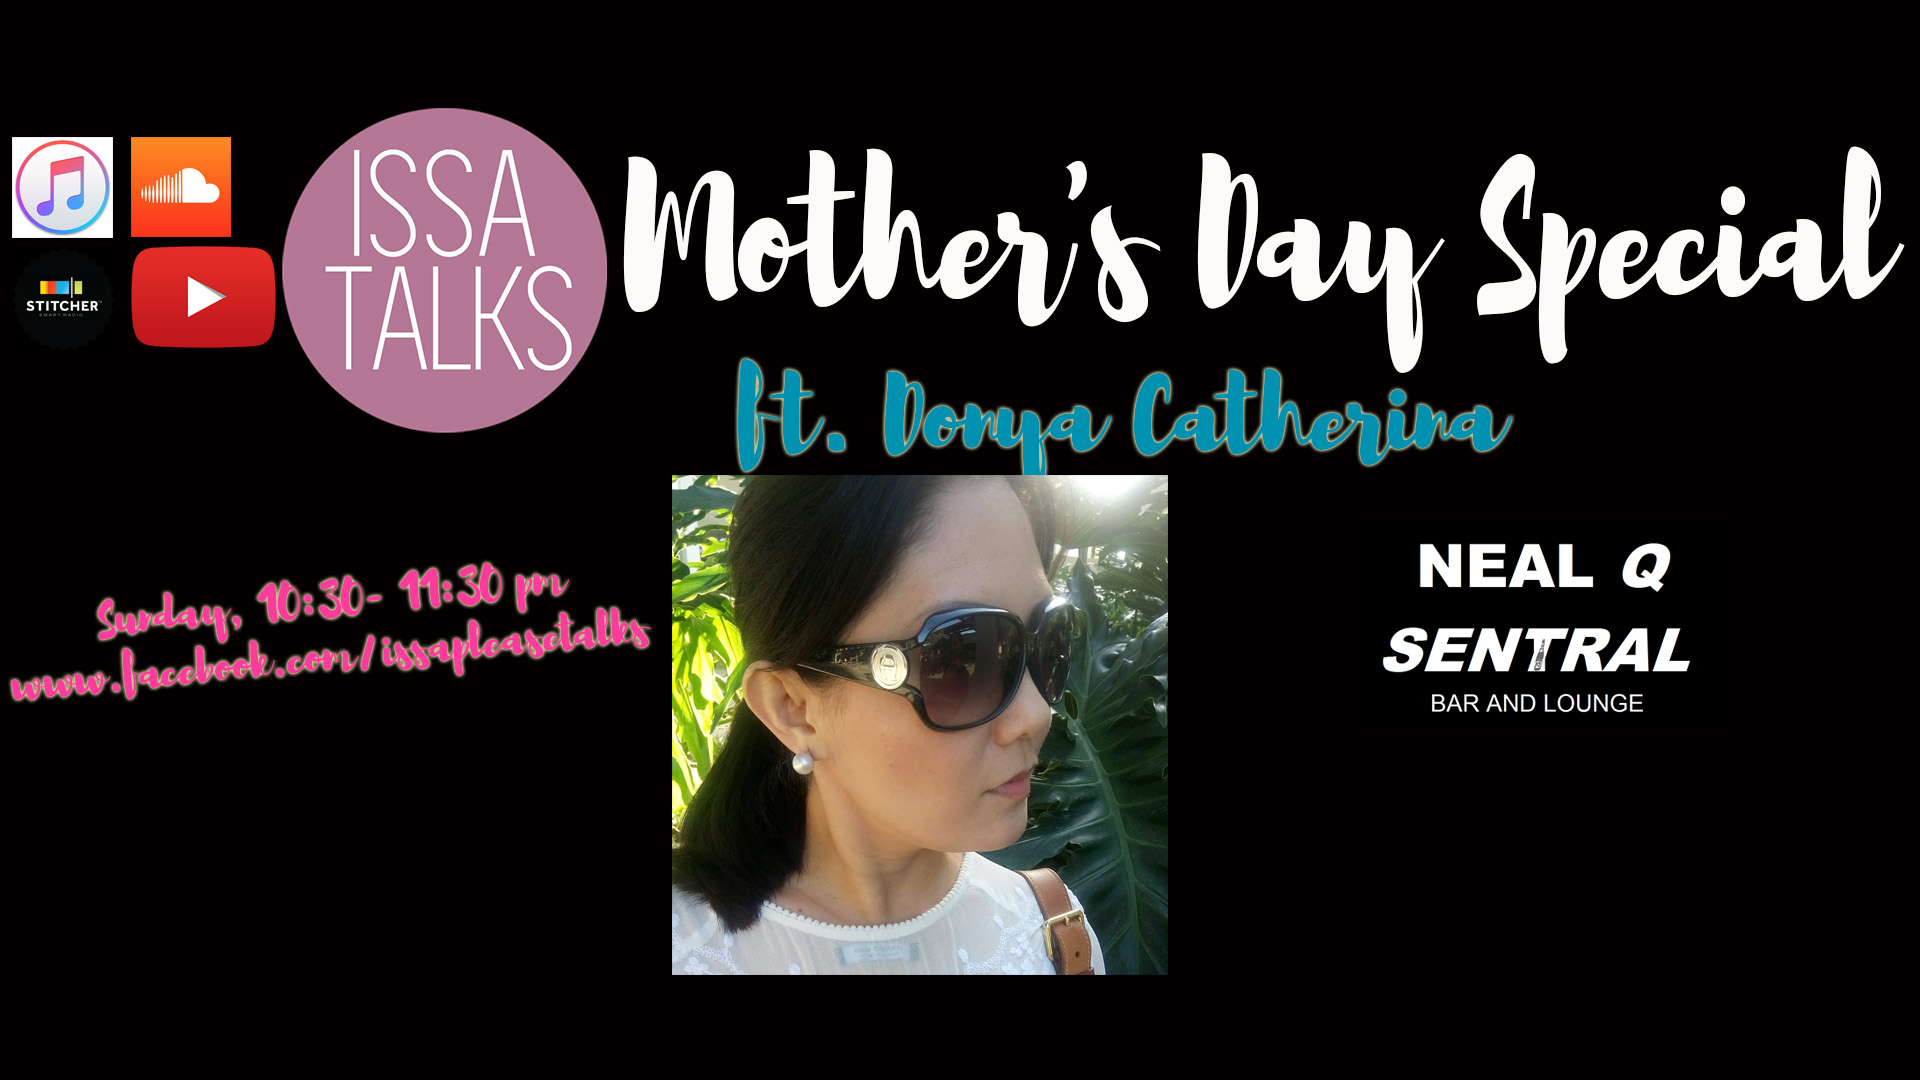 IssaTalks Episode 13: Mother's Day Special ft. Donya Catherina